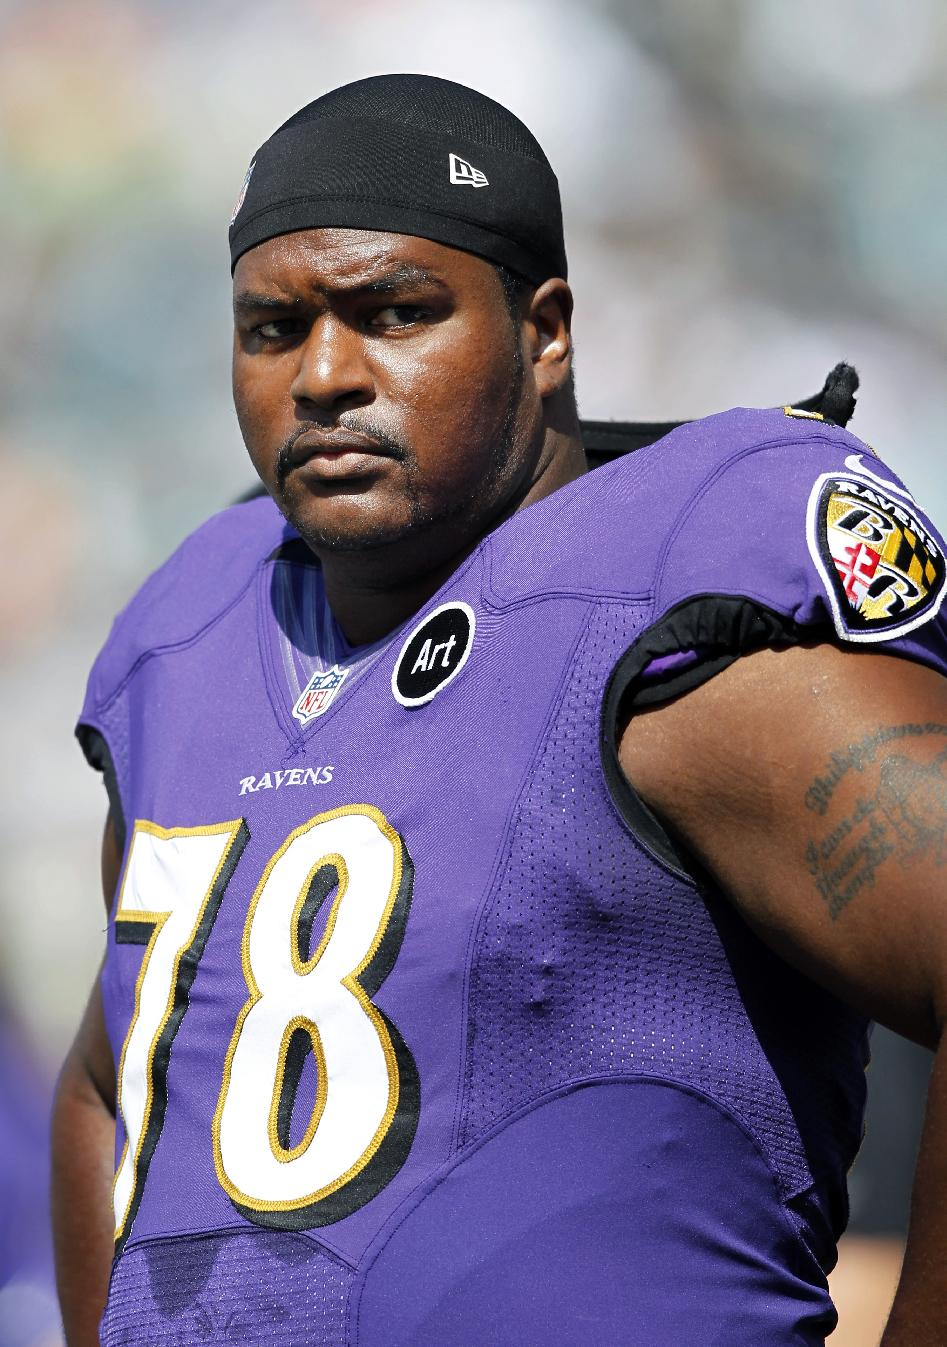 In this Sept. 16, 2012, file photo, Baltimore Ravens tackle Bryant McKinnie stands on the field before an NFL football game against the Philadelphia Eagles, in Philadelphia. McKinnie has been traded by the Ravens to the Miami Dolphins, who are anxious to shore up a leaky offensive line. The Ravens will receive a conditional late-round draft pick, coach John Harbaugh said Monday, Oct. 21, 2013